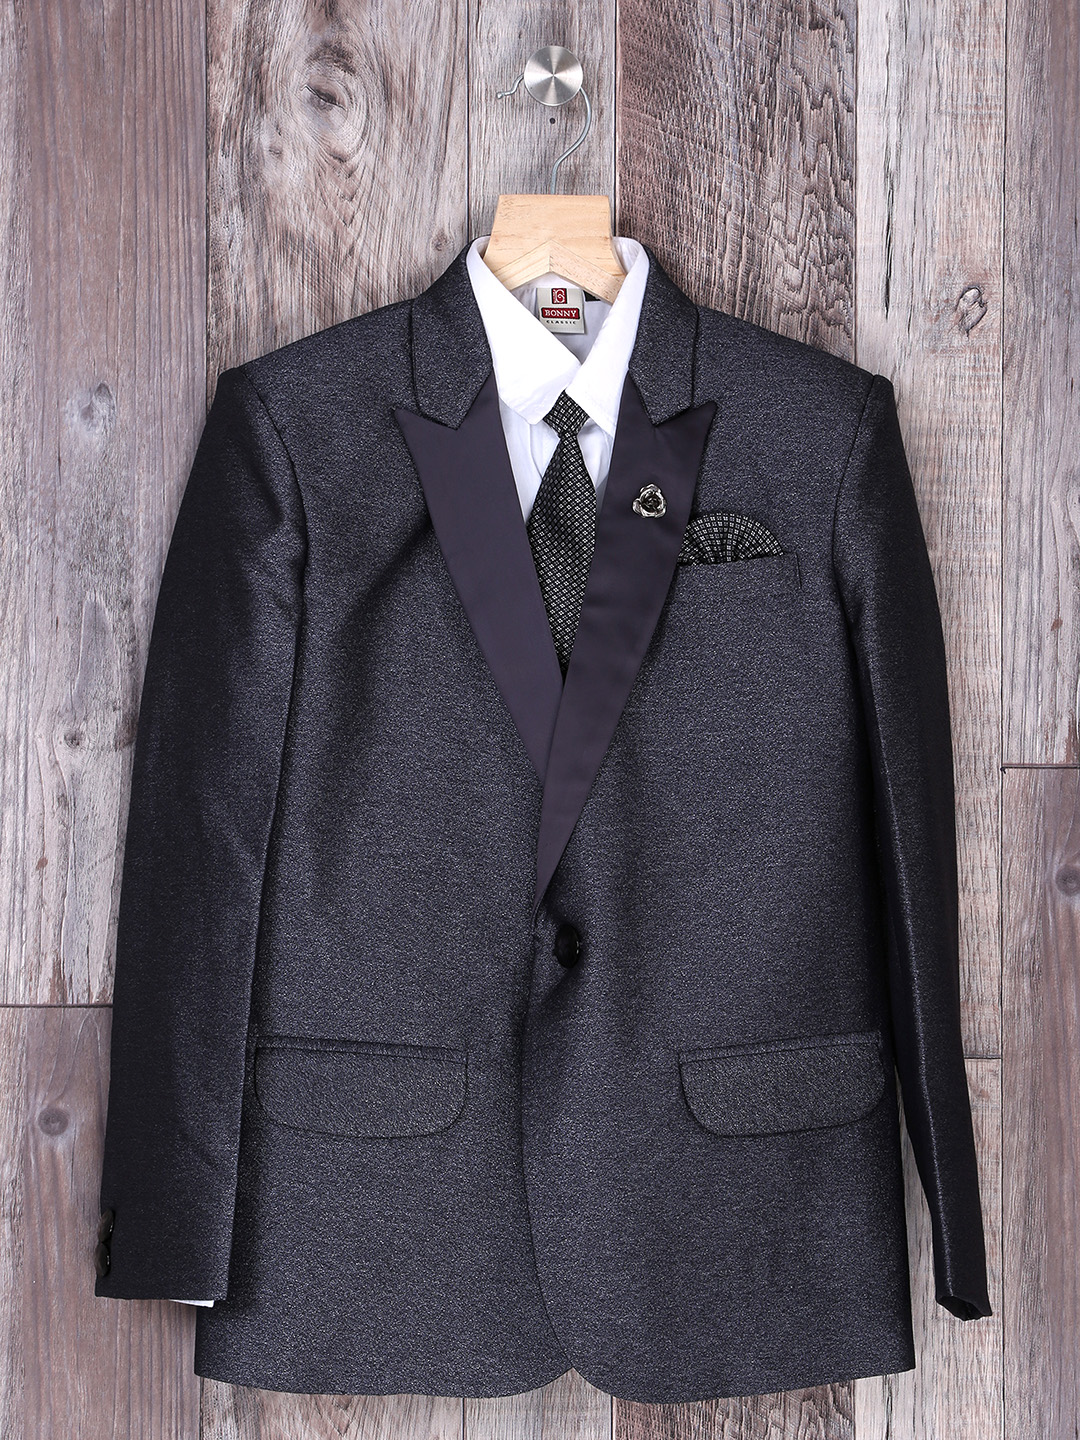 Boys Coat Suit - Buy Designer Tuxedo Suits for 1 to 16 year Boys